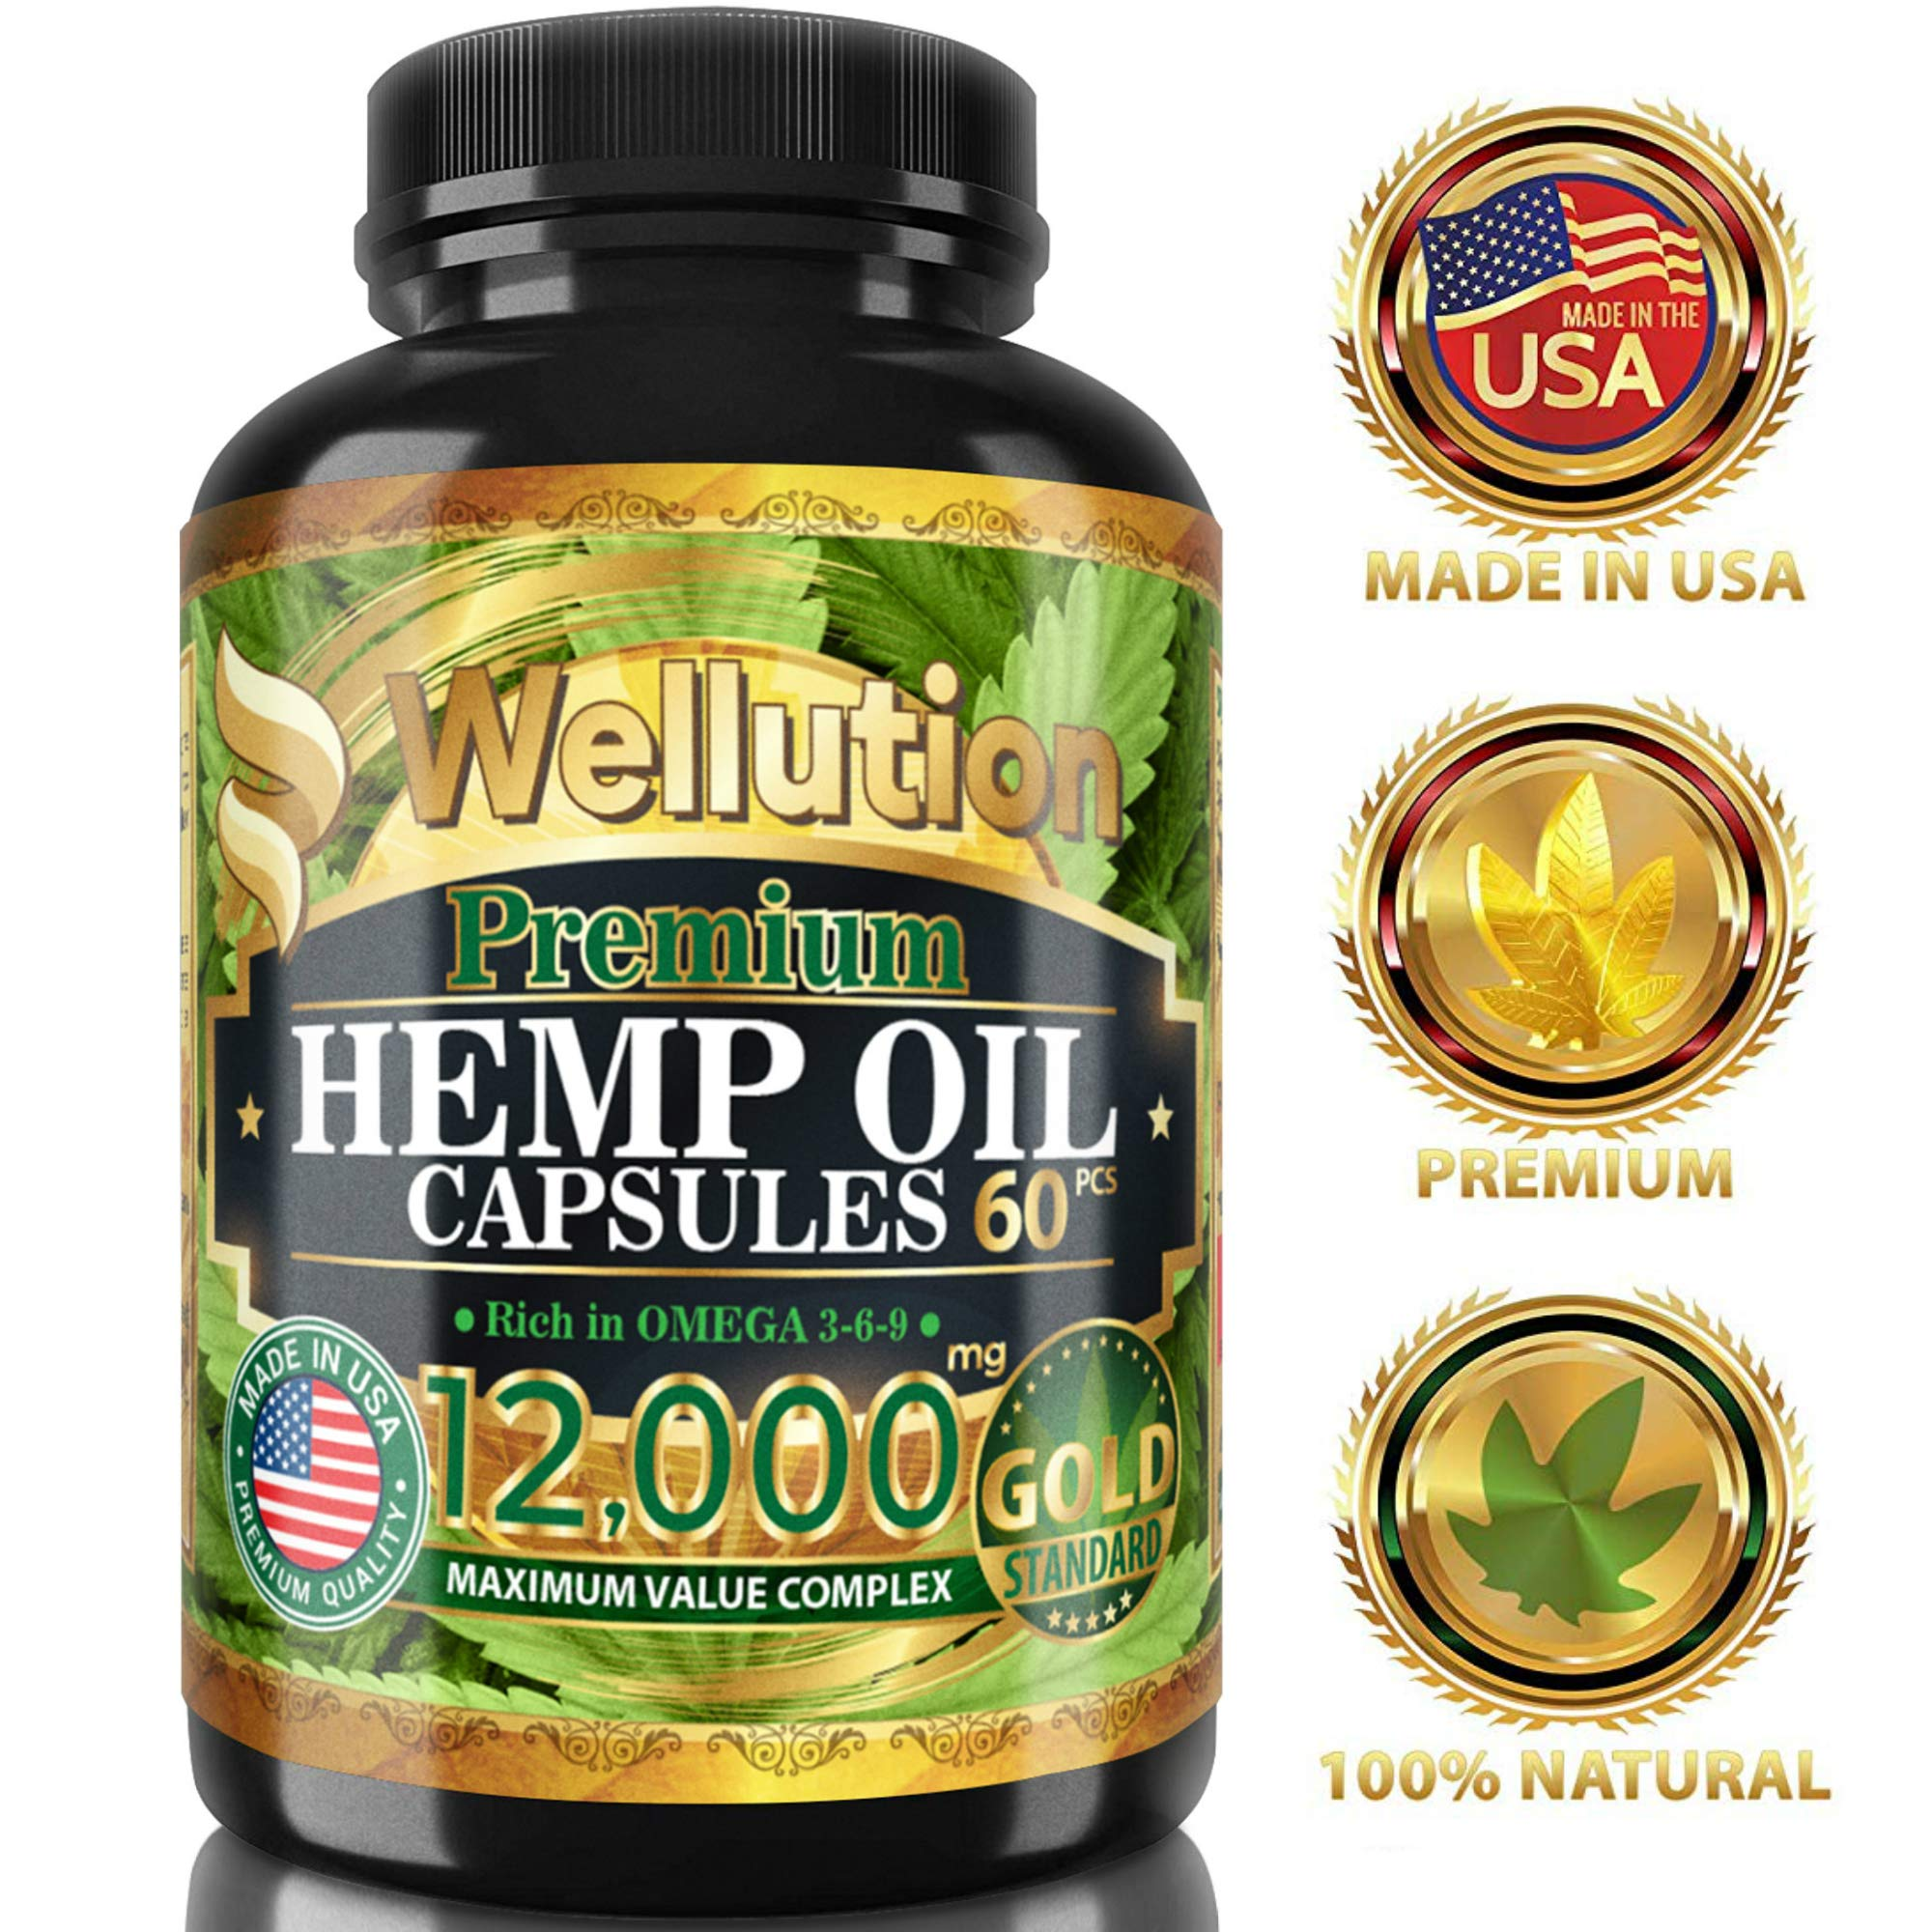 Hemp Oil Extract Capsules 12000 MG - Ashawagandha and Melatonin Supplement - Anxiety, Stress, Joint, Lower Knee, Neck Pain Relief - Sleeping and Mood Support Pills - Made in The USA, 60 Capsule Pack by WELLUTION